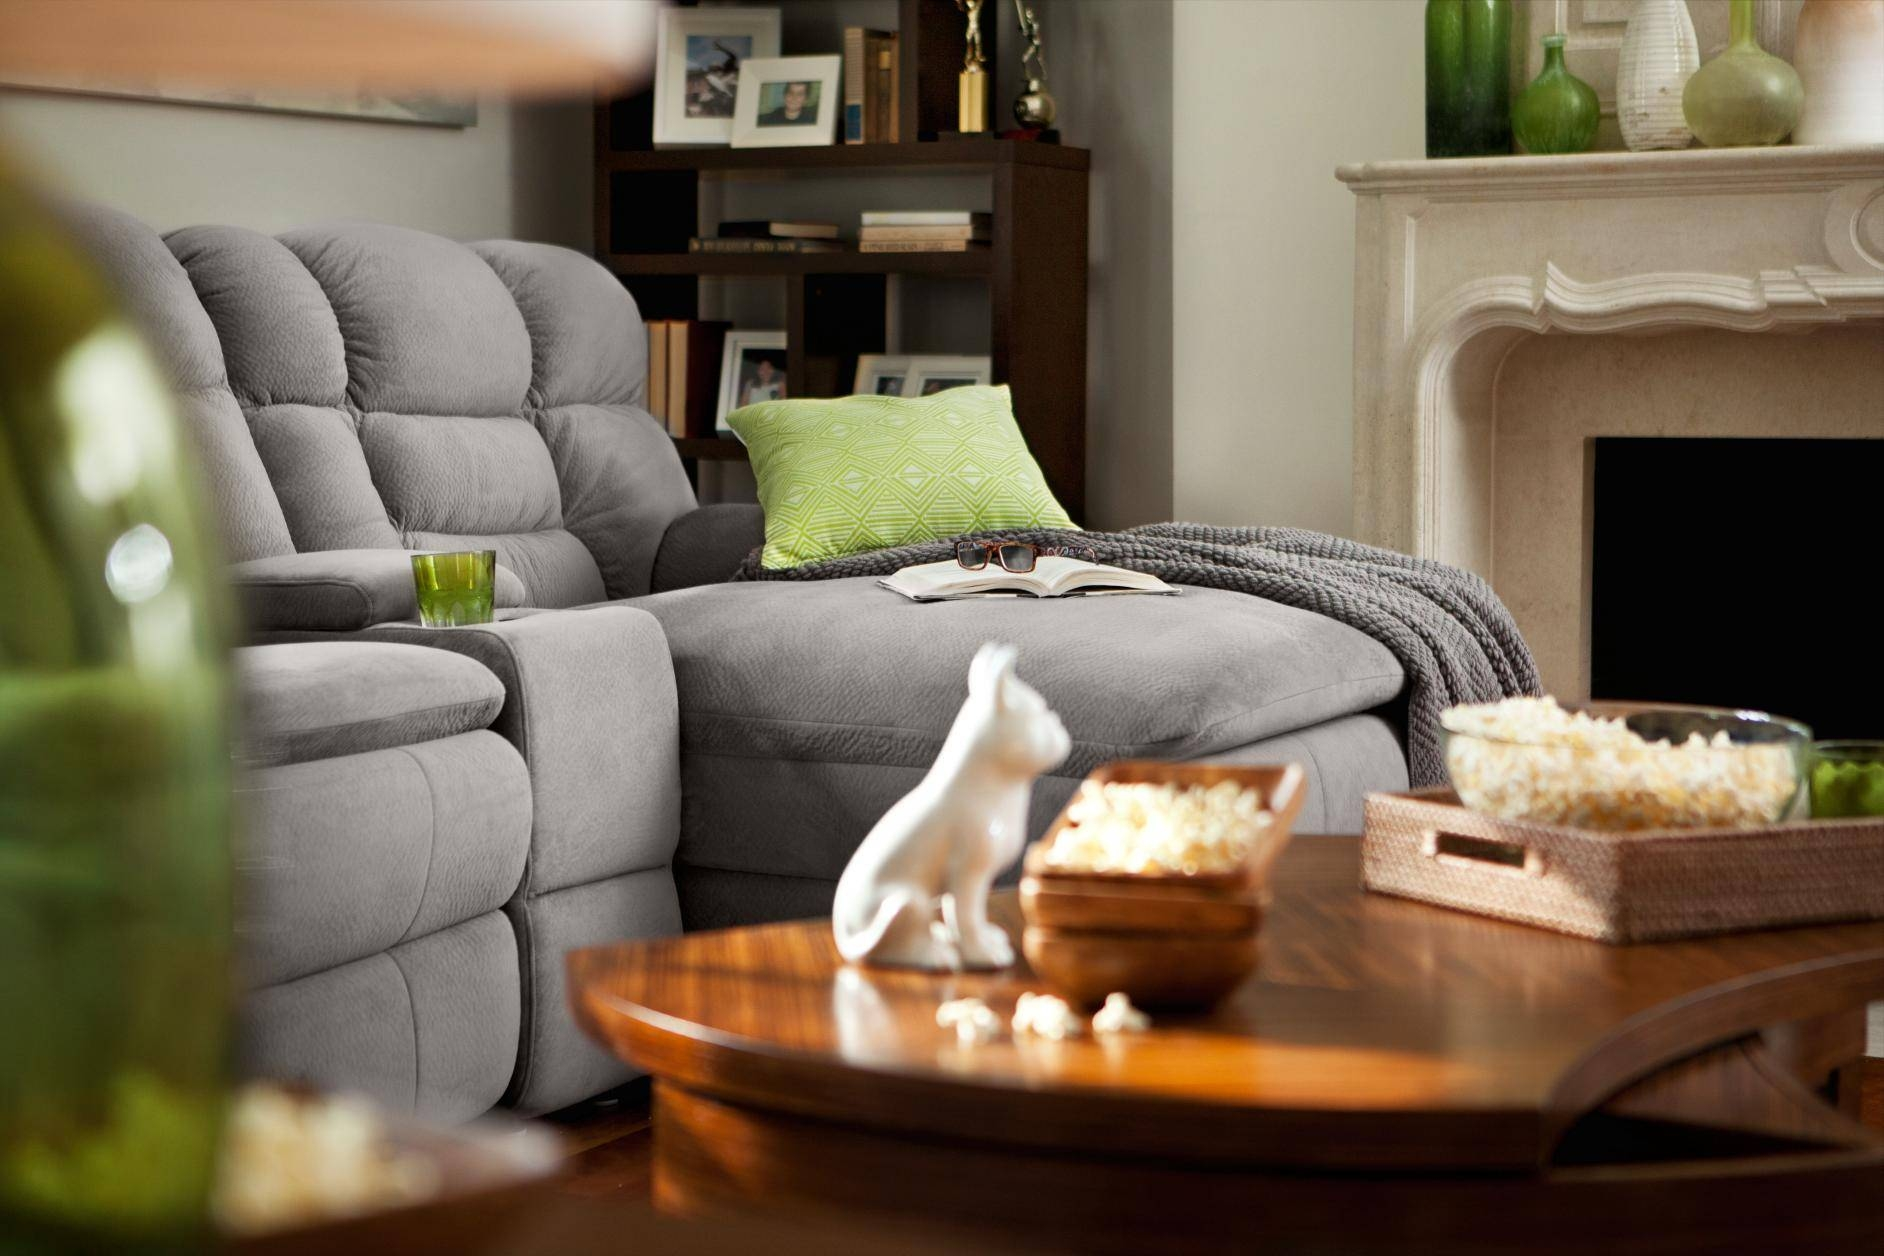 15 Best Big Comfy Sofas